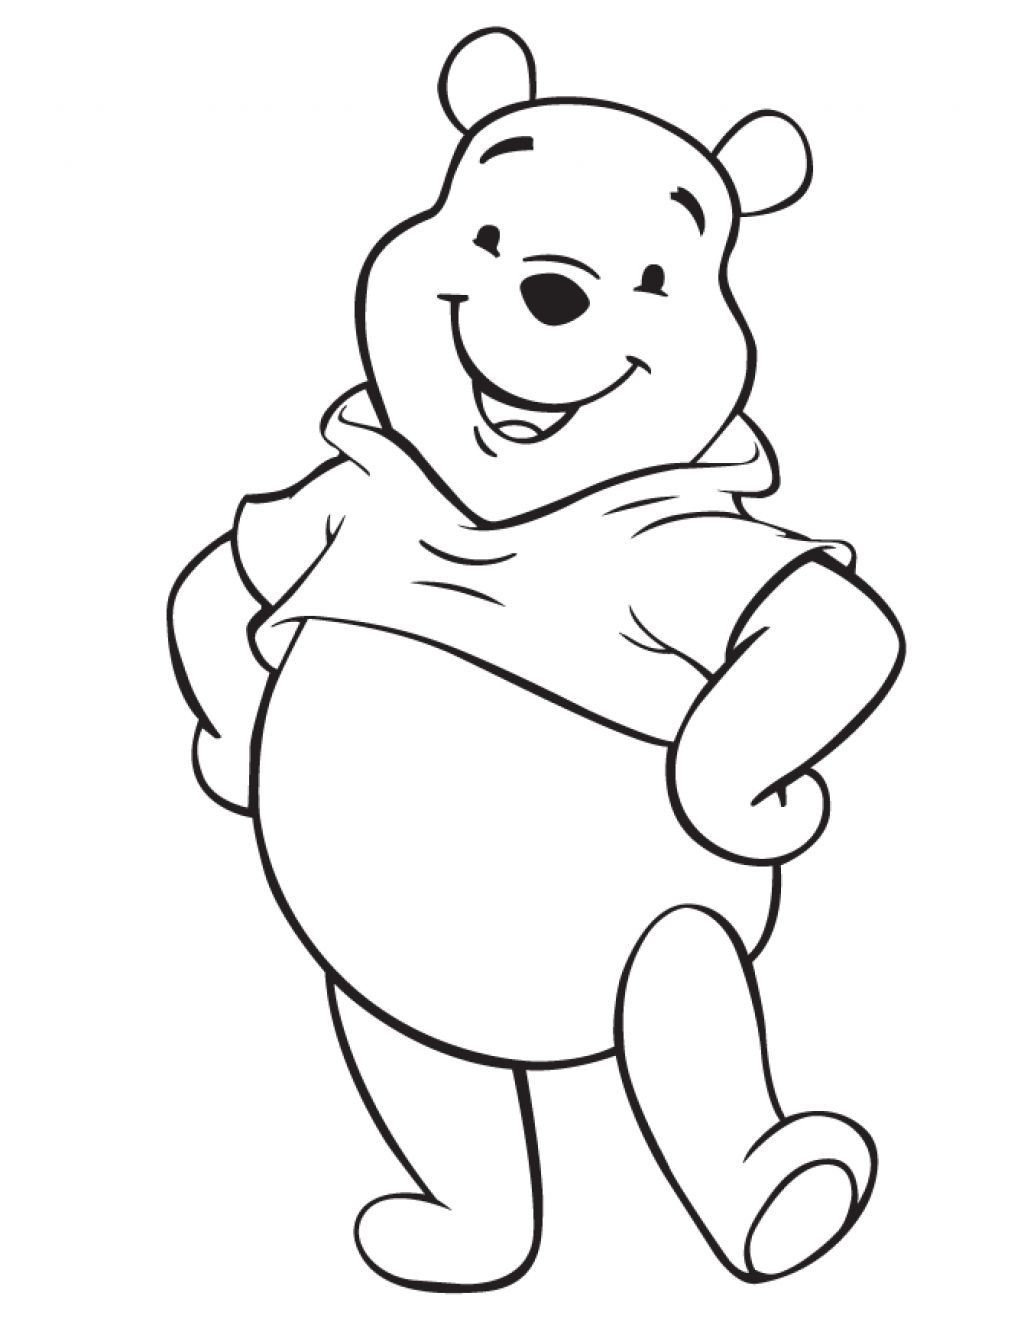 Images For Gt Disney Characters Coloring Pages Easy